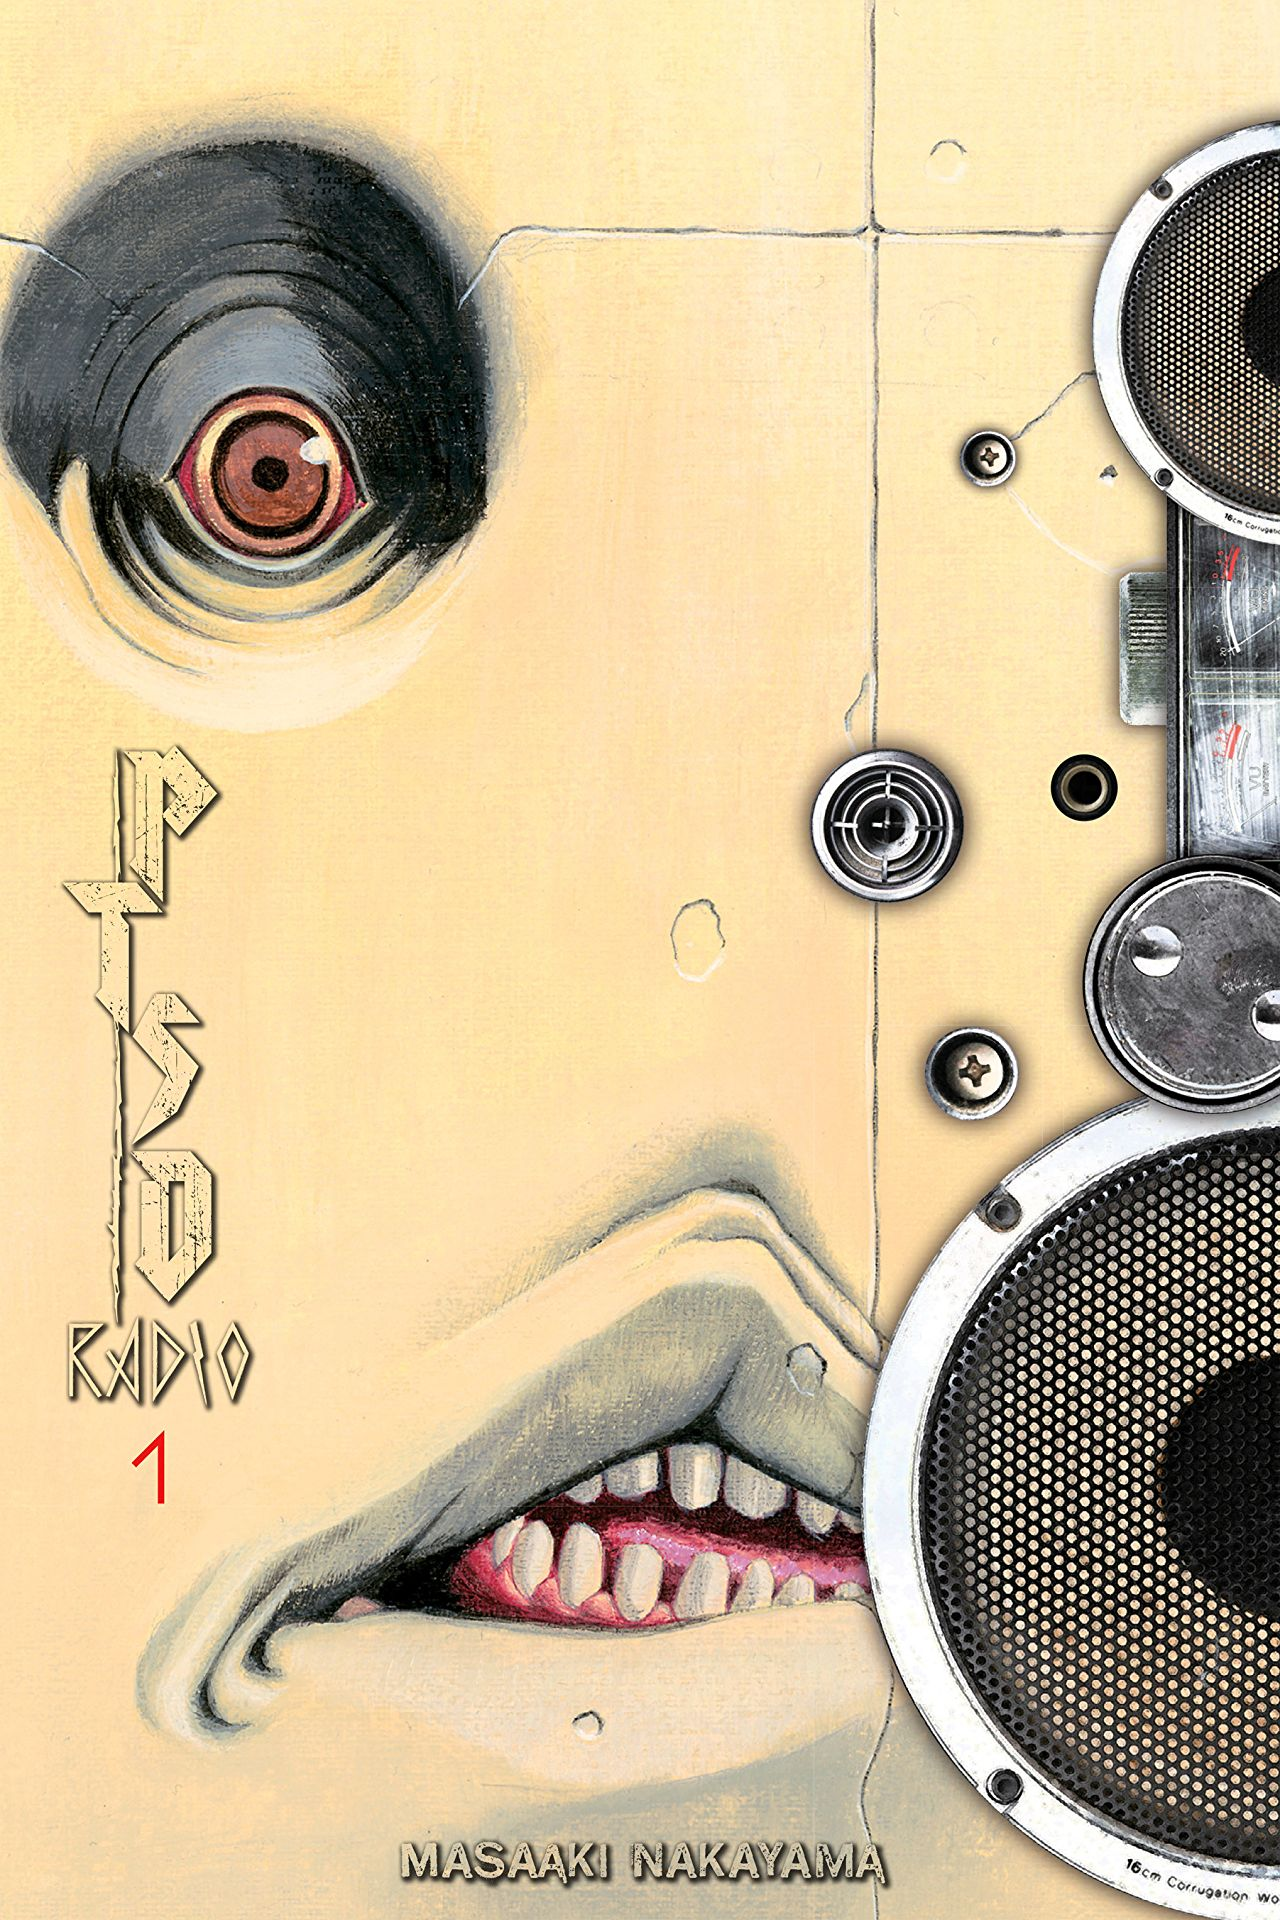 PTSD Radio Vol. 1 review: Unnerving horror that will stick with you